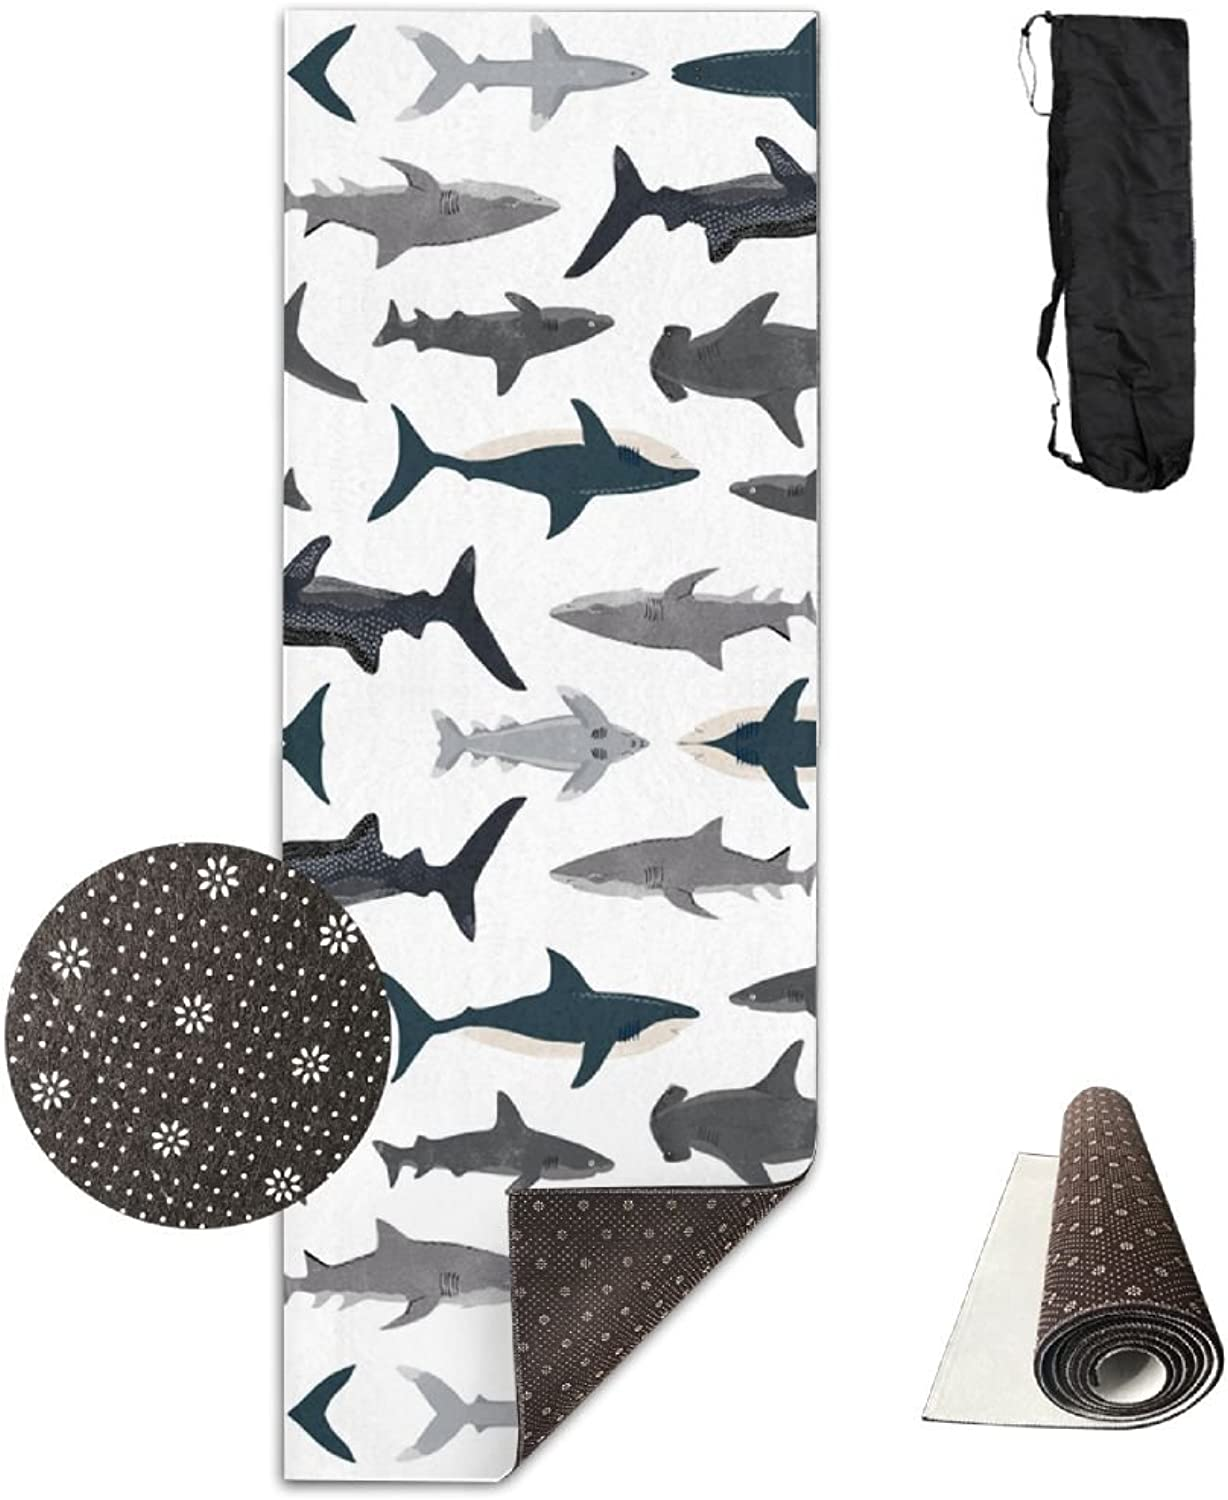 HHHSSS Long 70inch Wide 28inch Non Slip  Shark Sharks Nautical Boys Exercise Mat for Yoga, Workout, Fitness with Carrying Strap & Bag